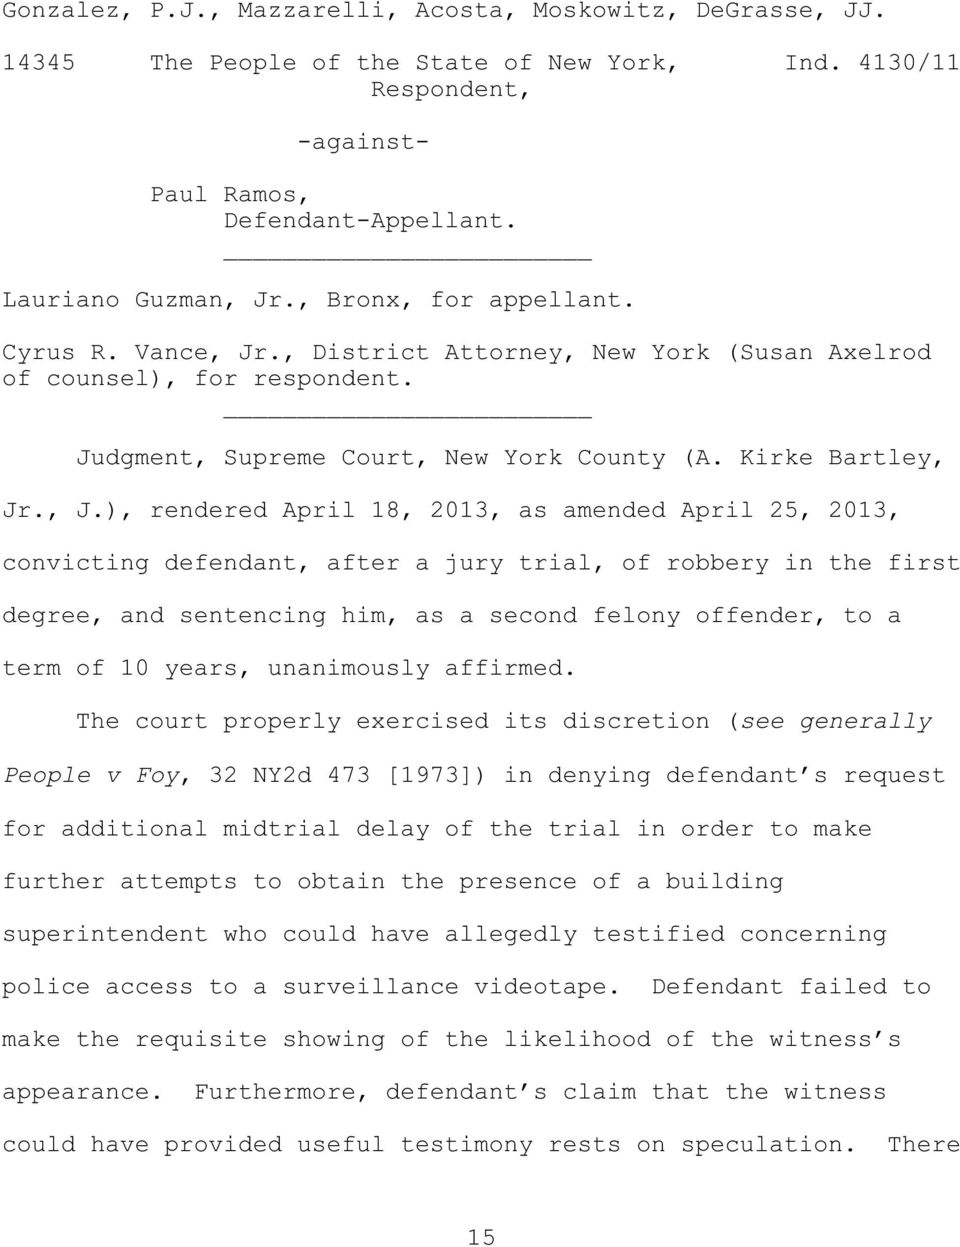 ., District Attorney, New York (Susan Axelrod of counsel), for respondent. Judgment, Supreme Court, New York County (A. Kirke Bartley, Jr